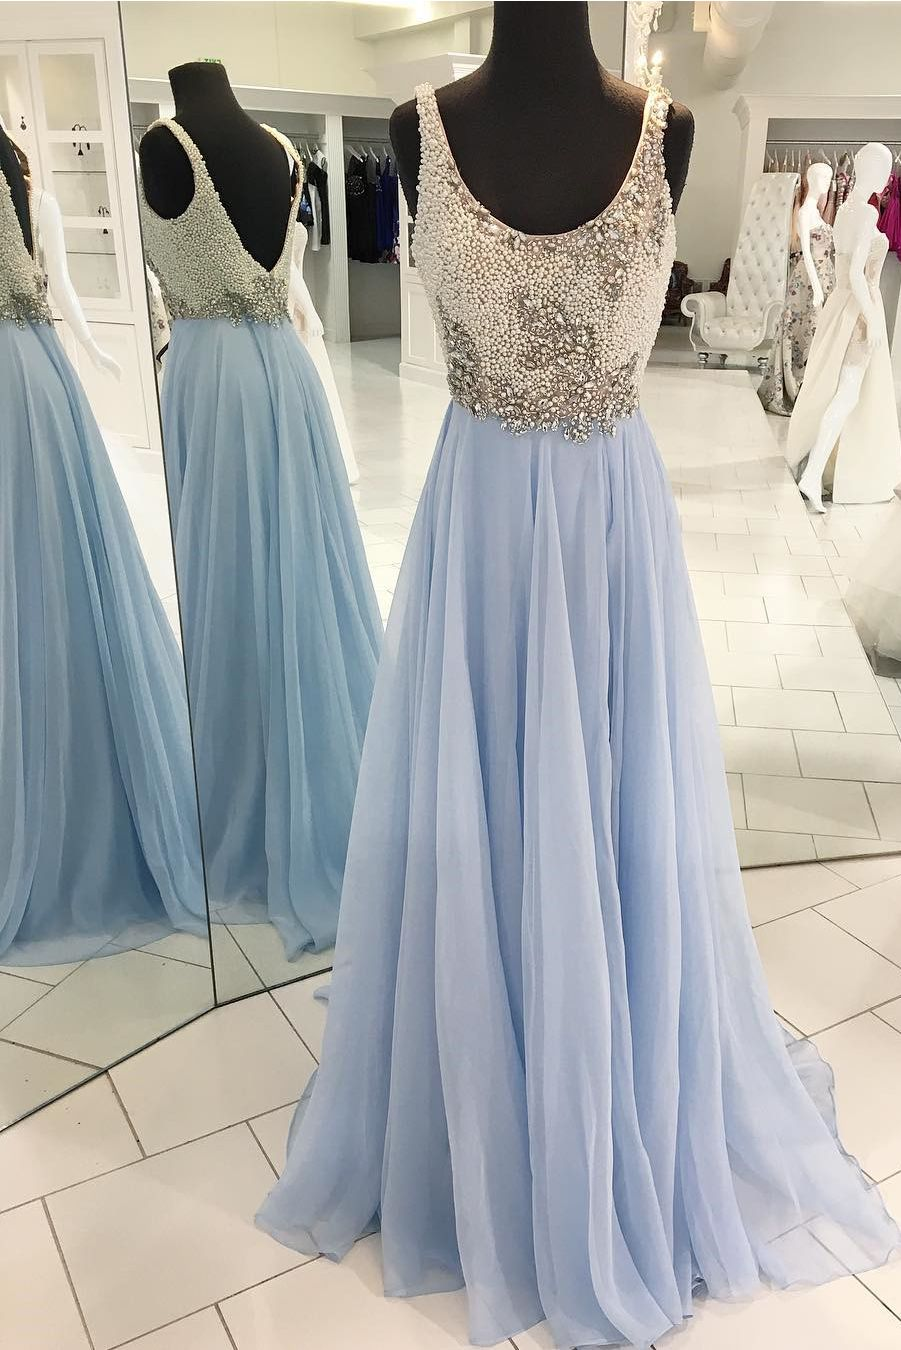 Gorgeous Blue Long Prom Dress with White Pearls | Ball Gown ...